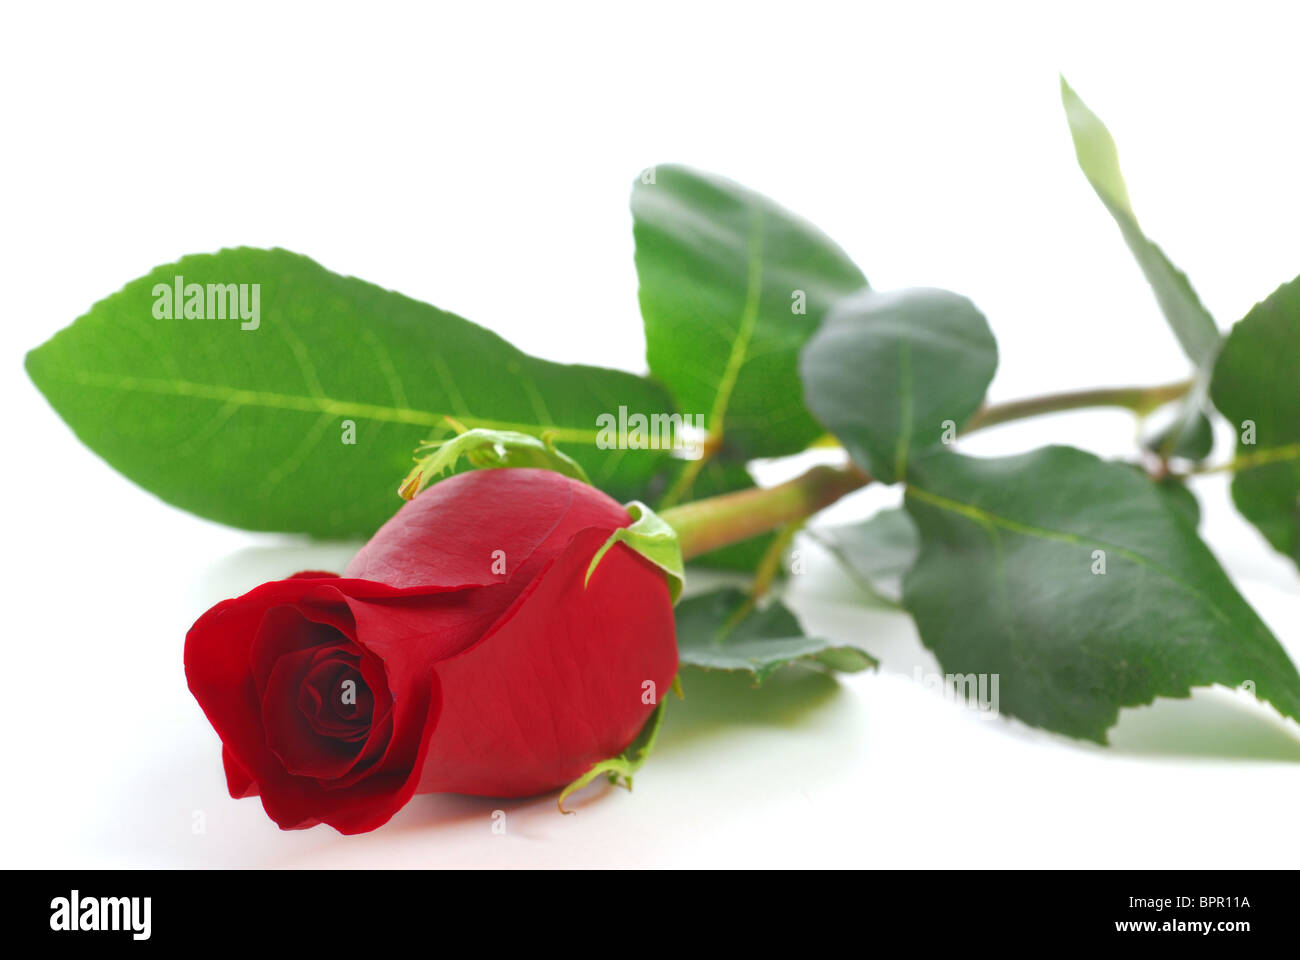 Red rose on white background - Stock Image